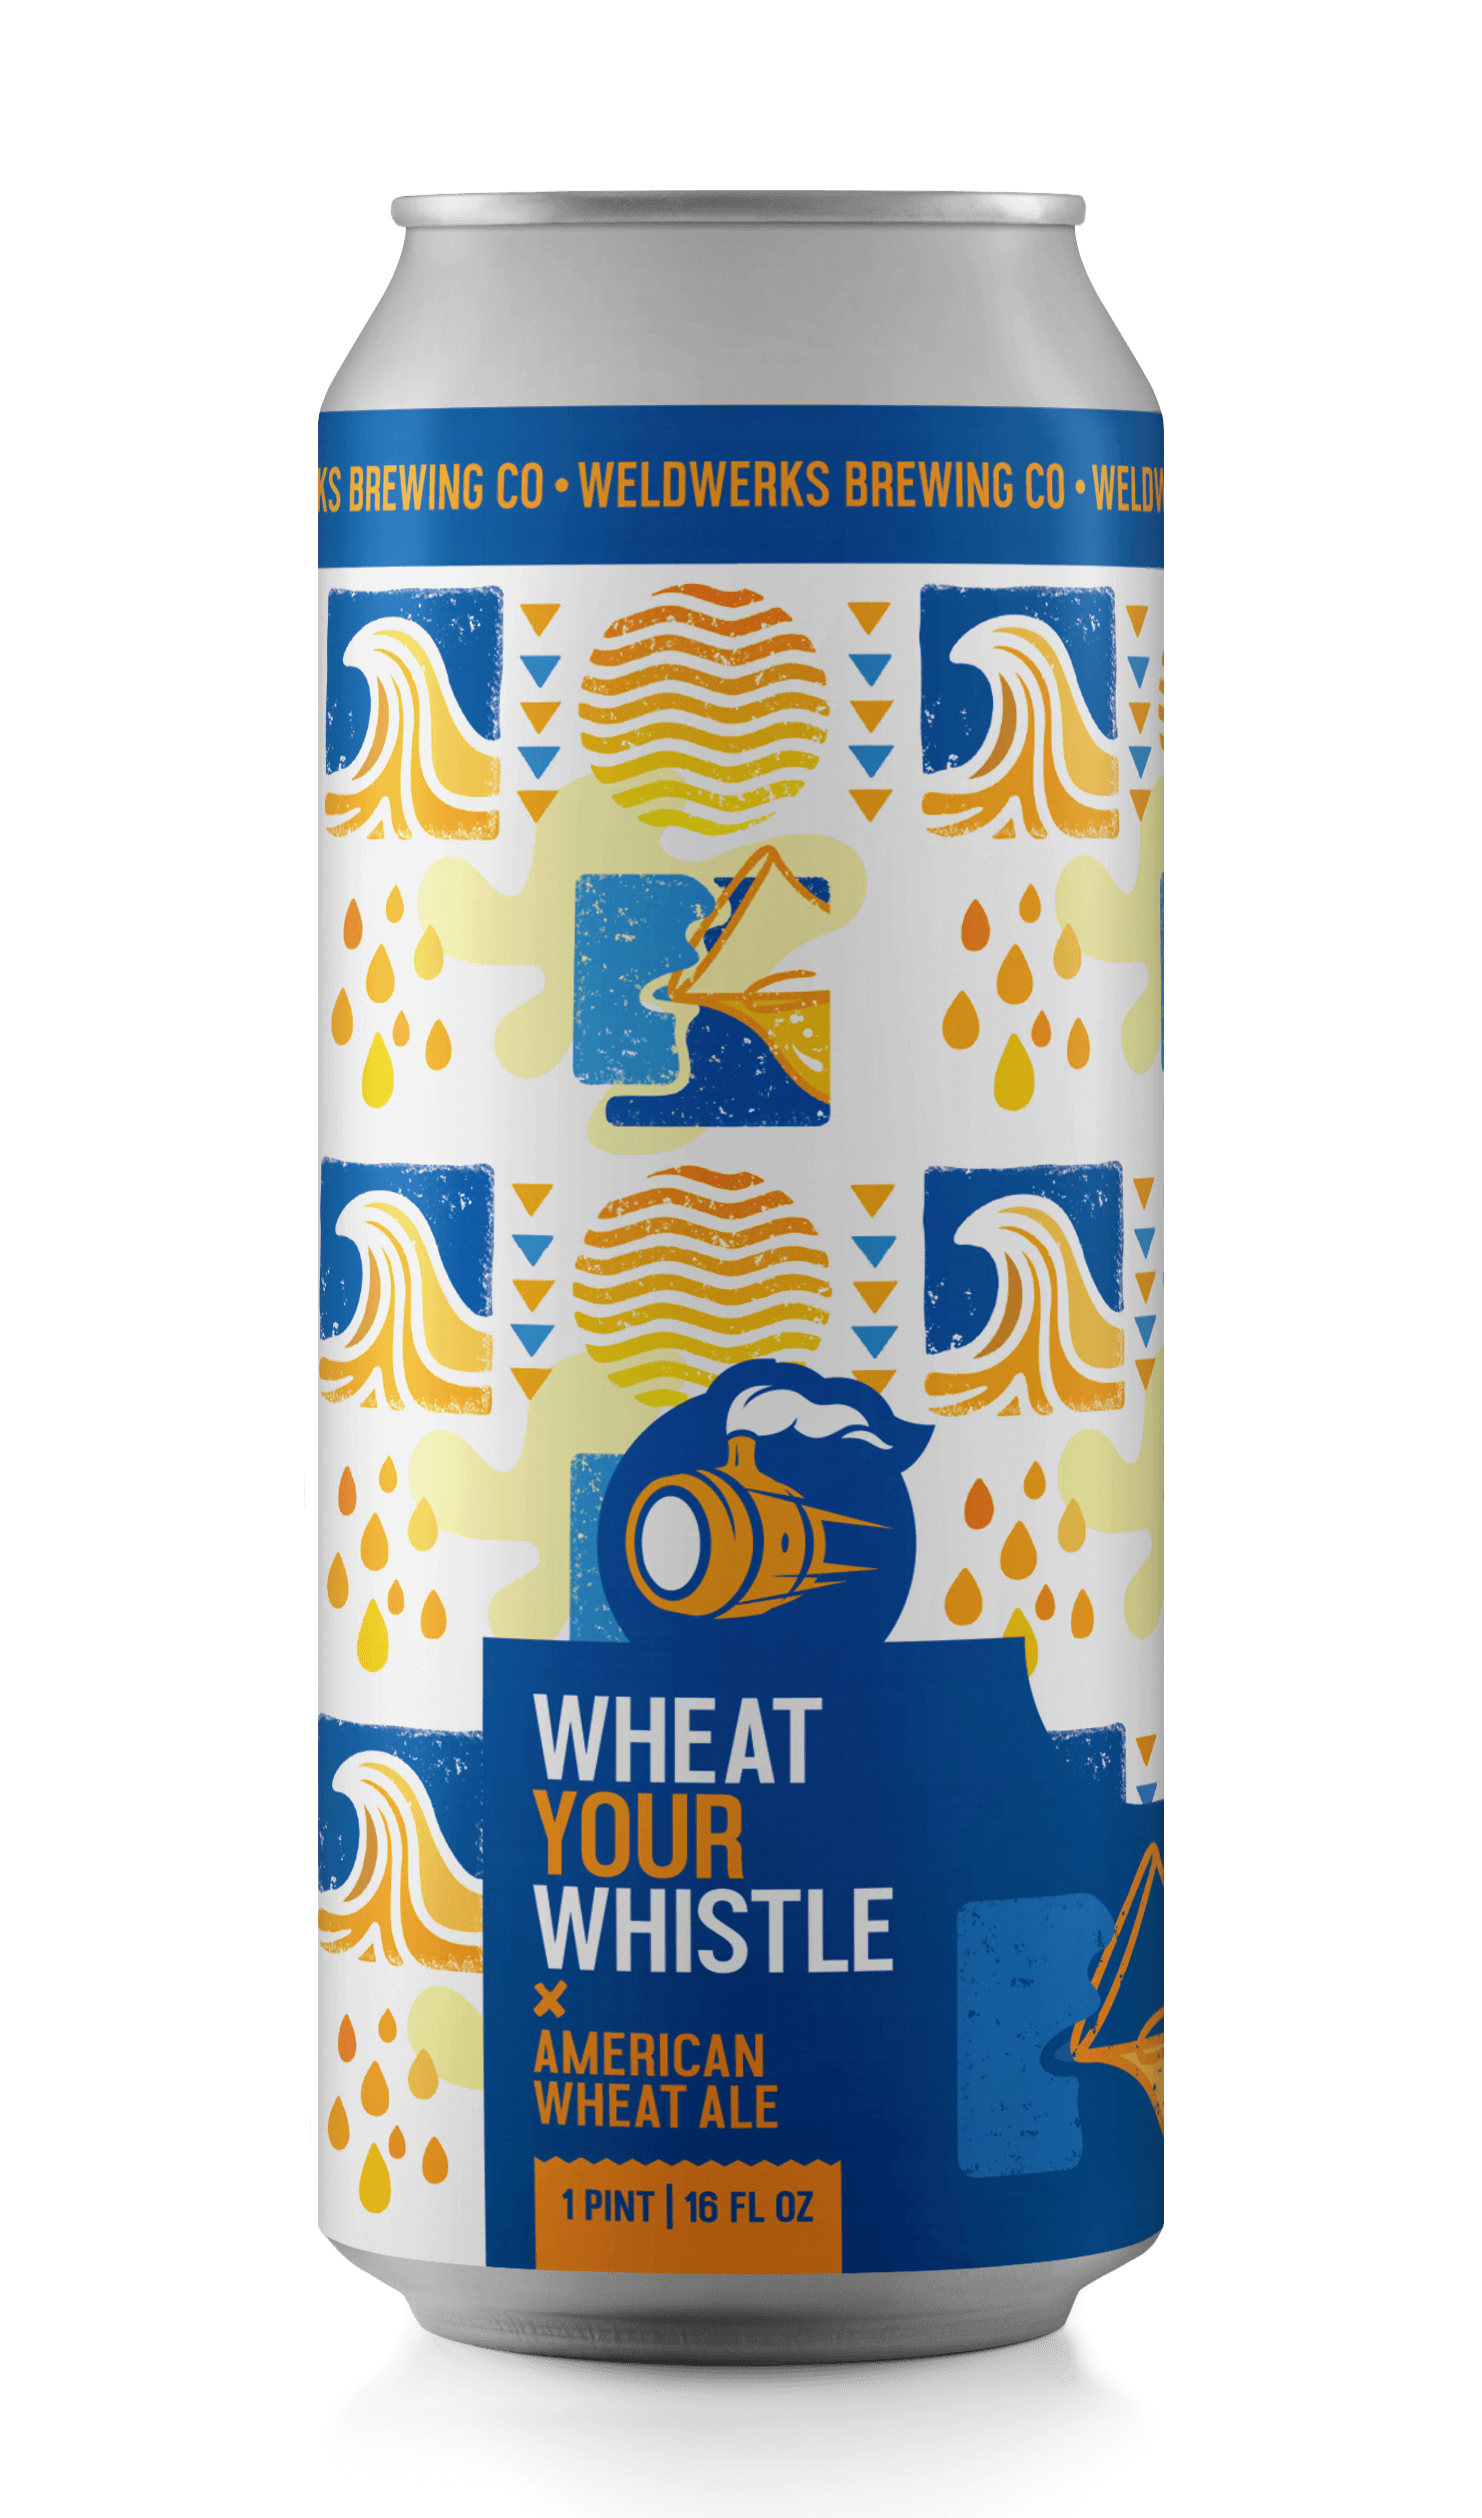 Wheat Your Whistle